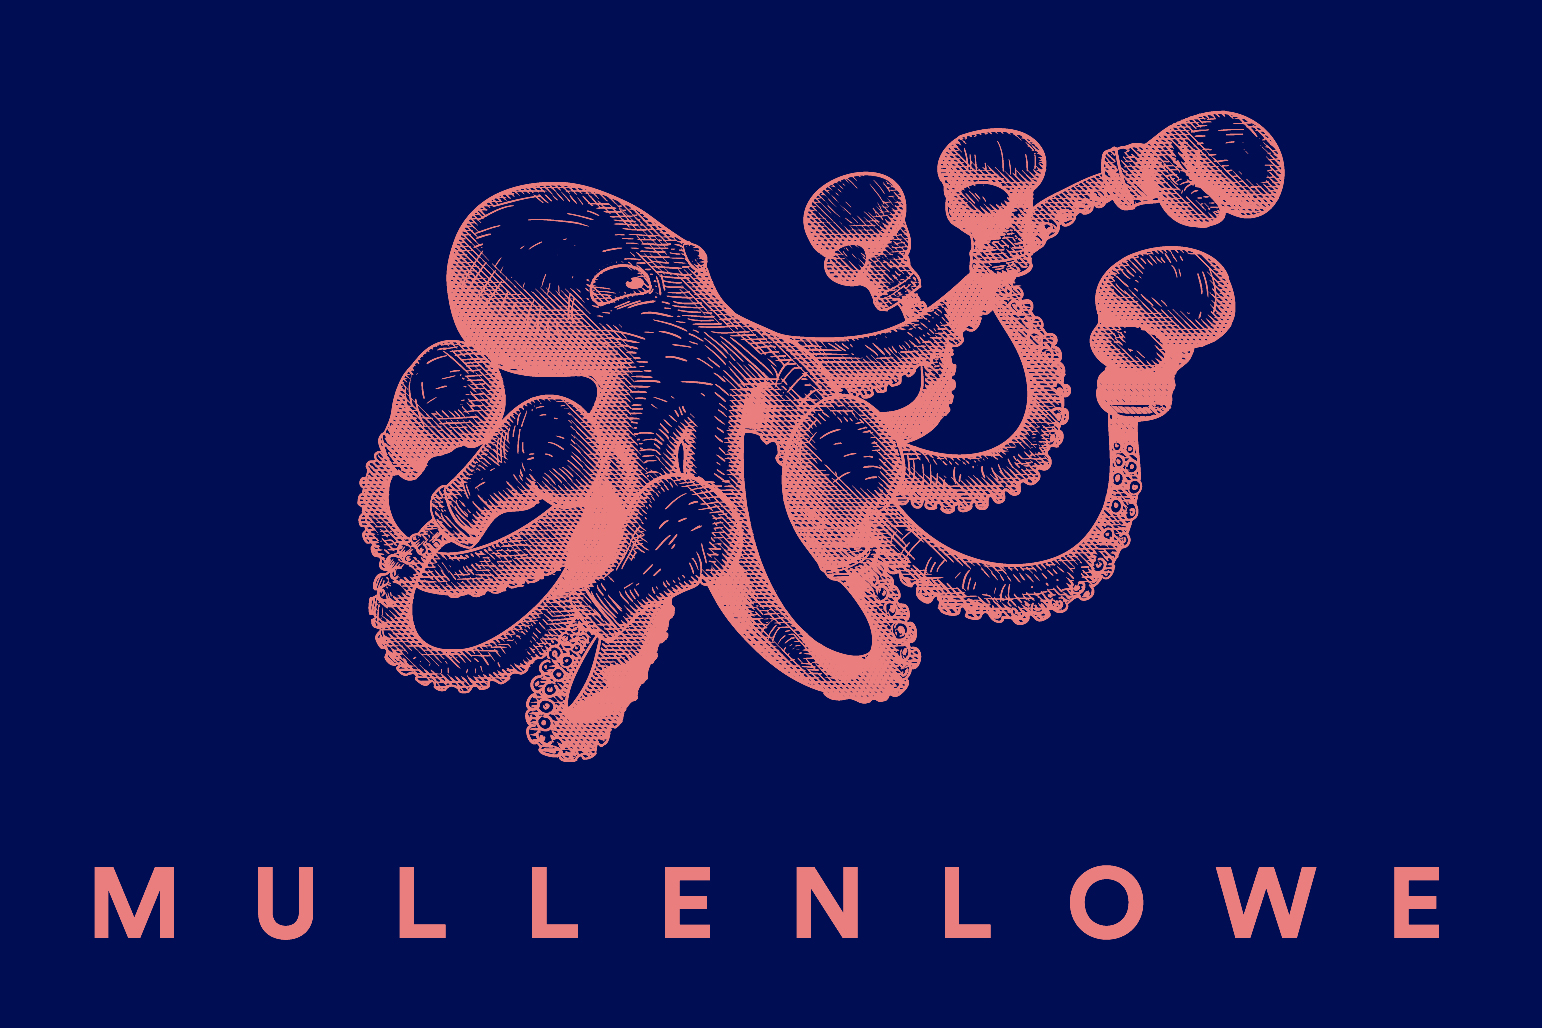 MullenLowe lays off 10 percent of staff